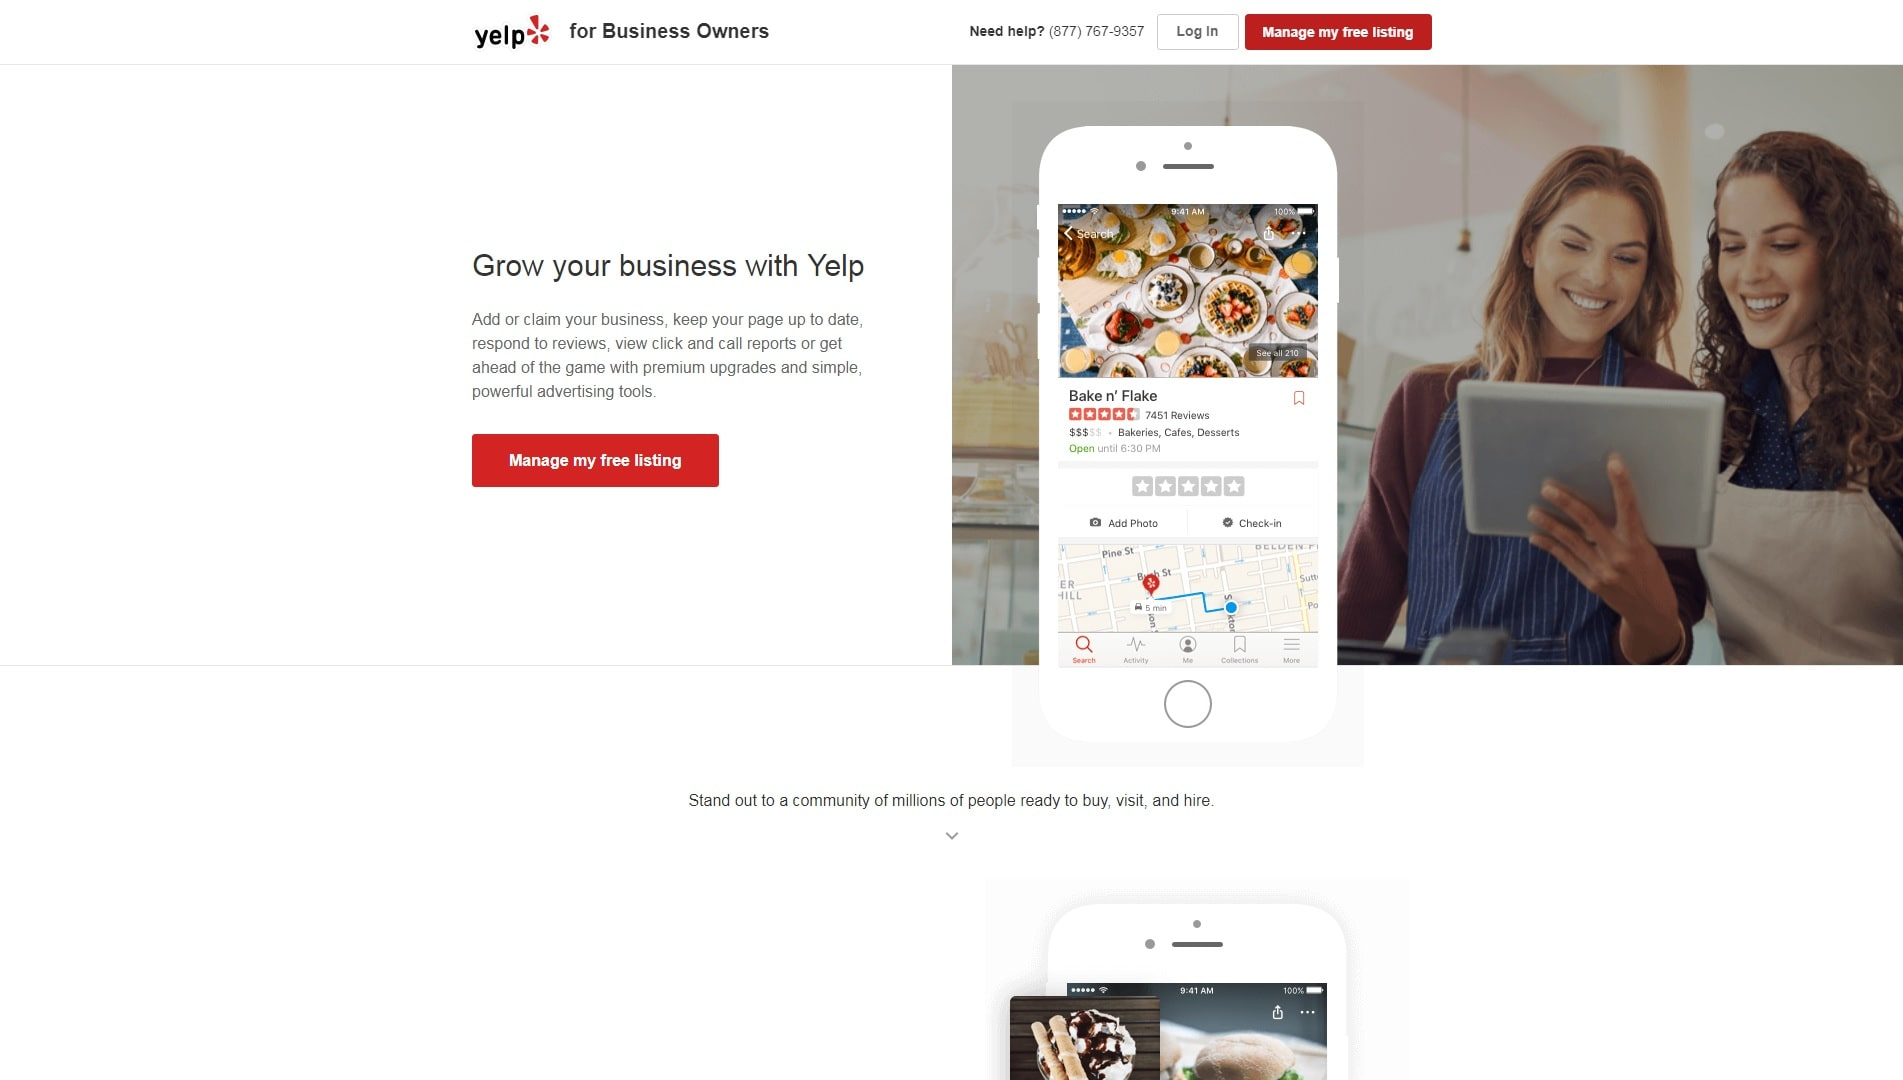 Photo of Yelp's website